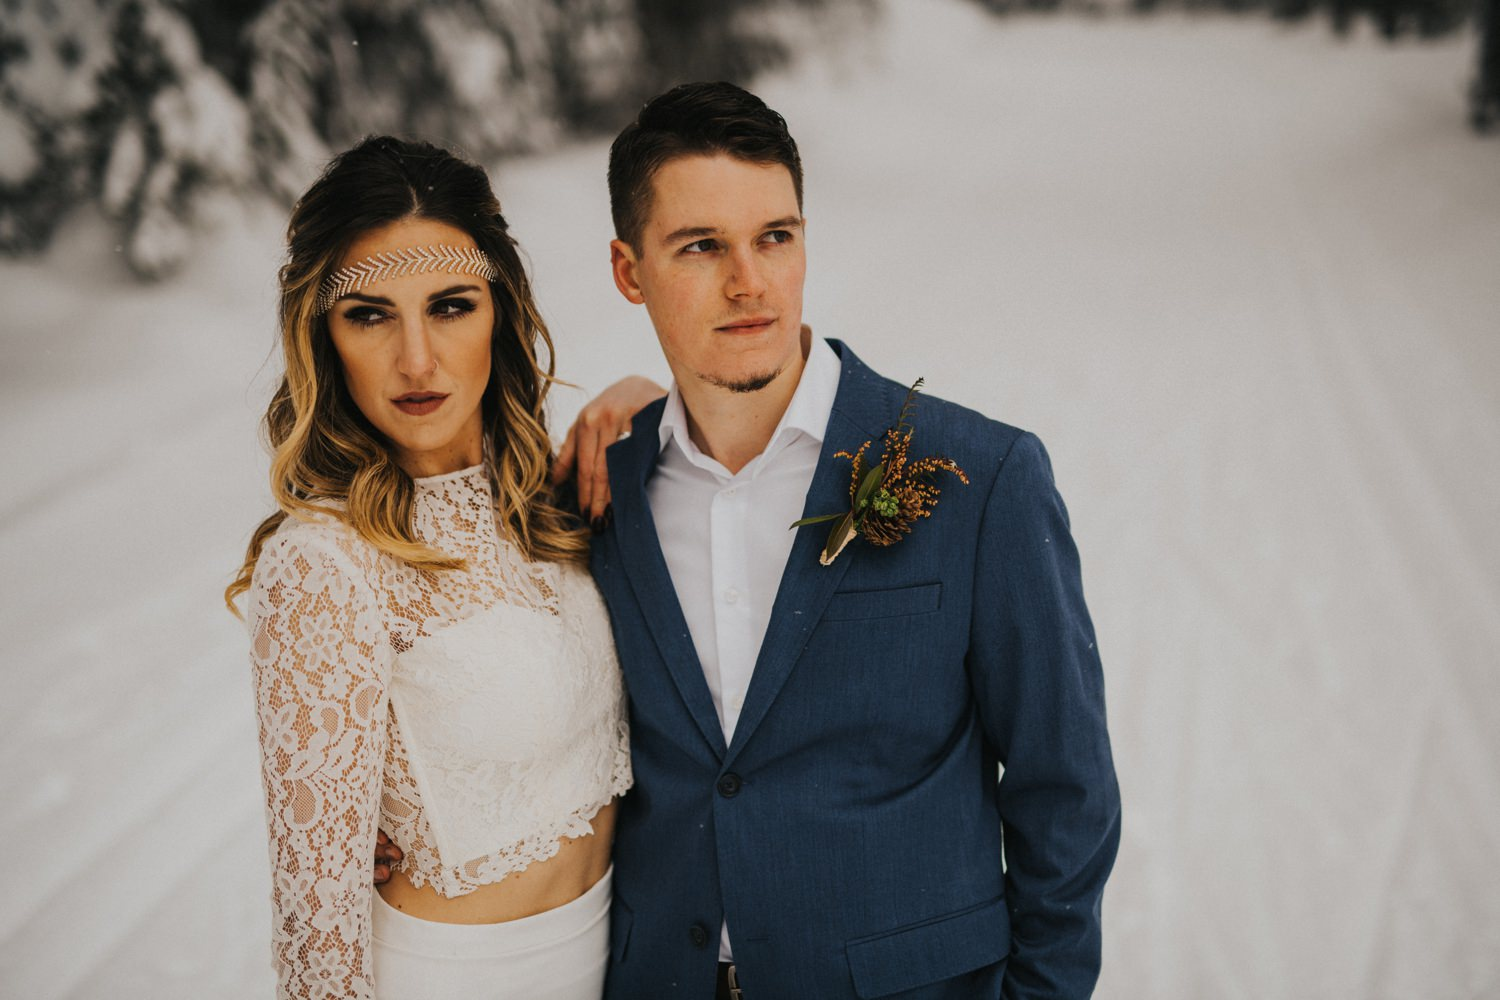 Okanagan Winter Elopement - Joelsview Photography_0014